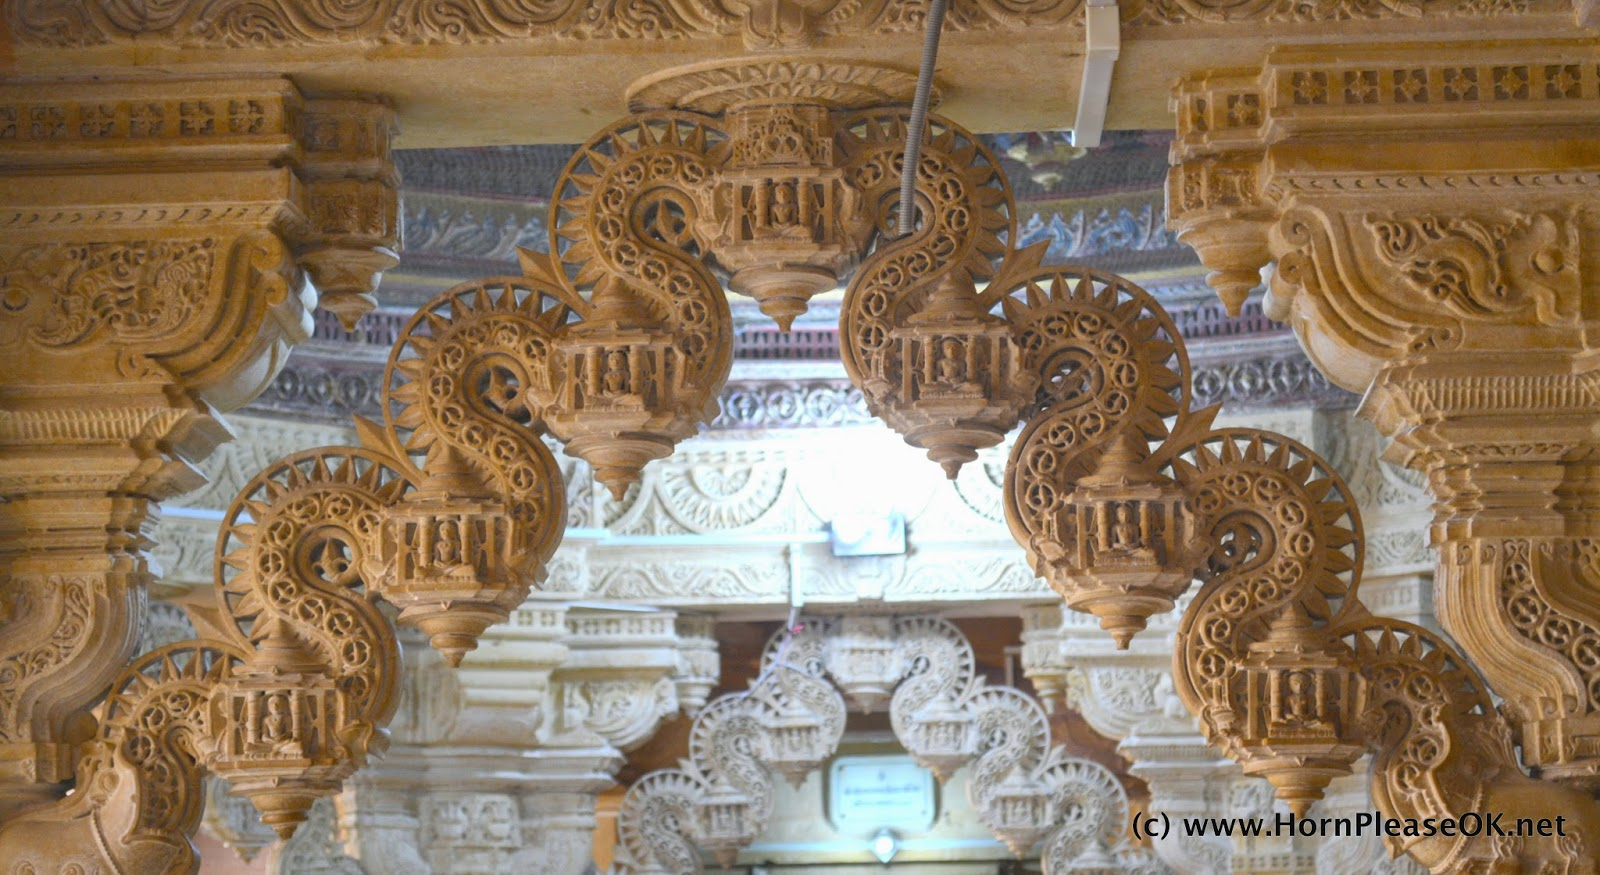 Exquisitely carved torans inside the Jain Temples in Jaisalmer Fort